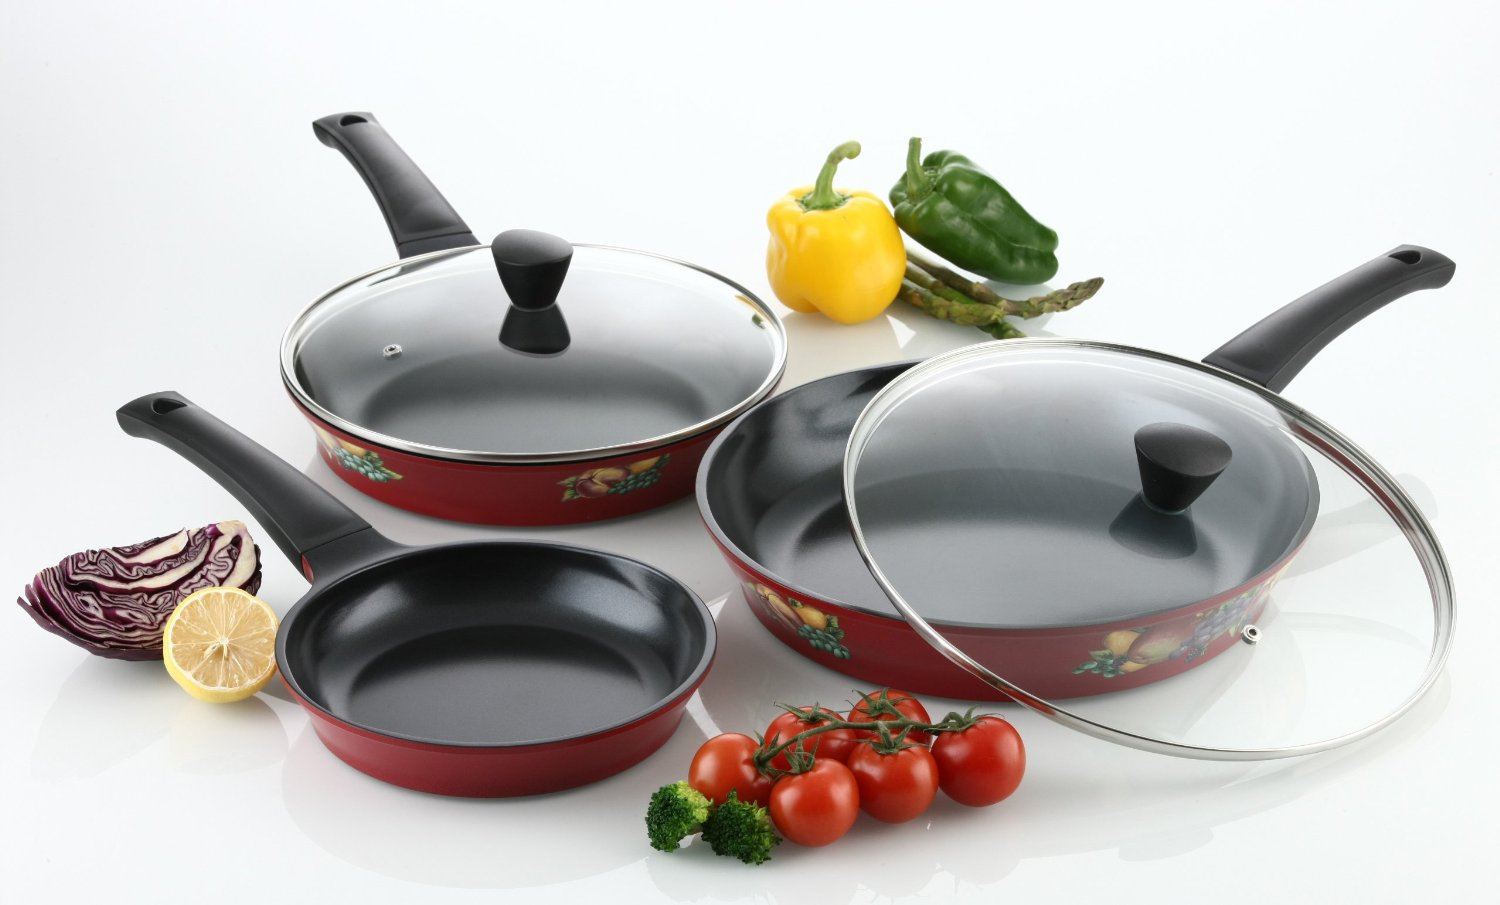 Ceramic-Coated-Nonstick-Fry-Pans-Set.jpg